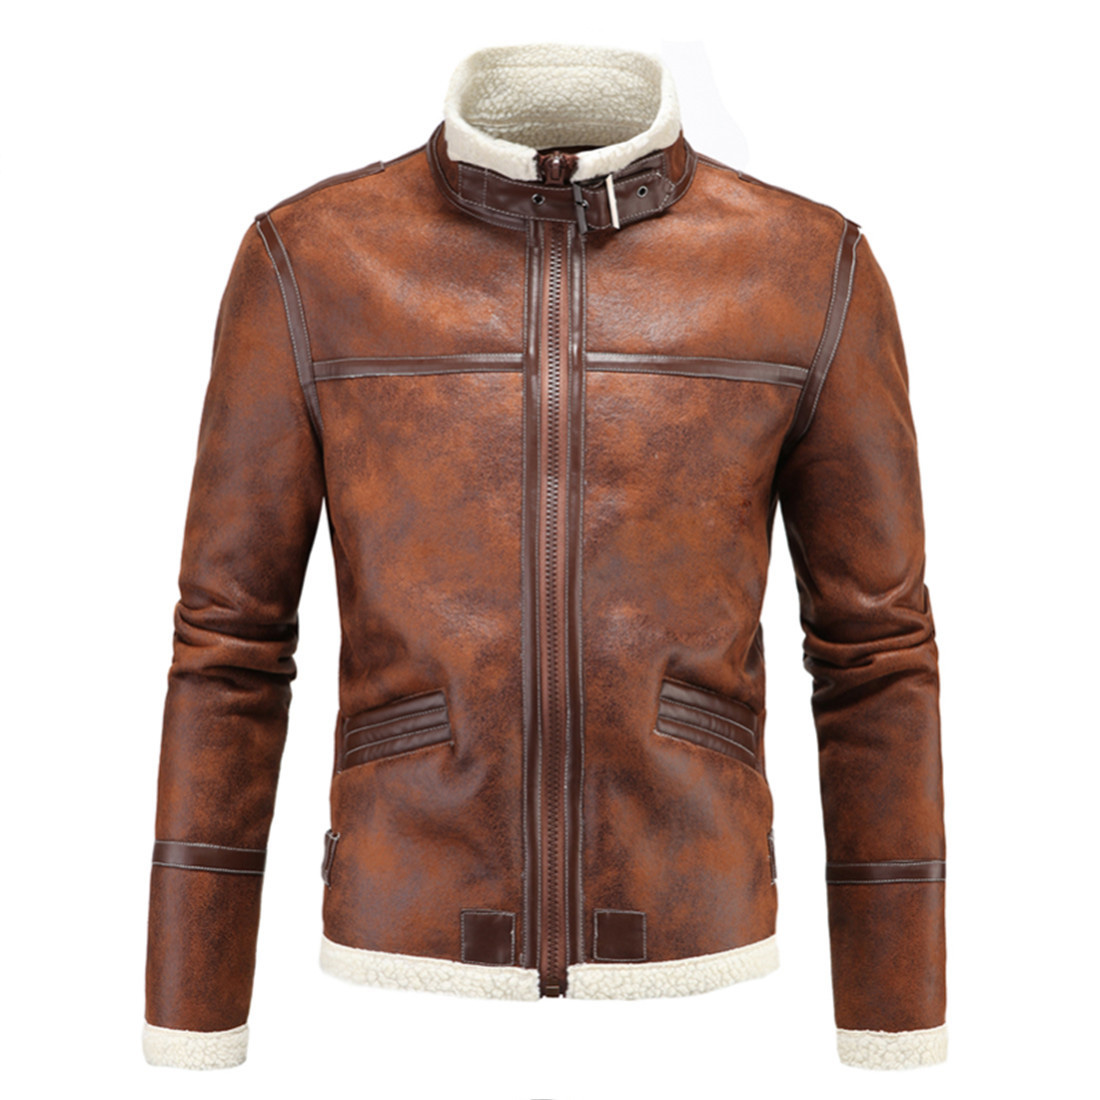 Winter Brand Vintage <font><b>Faux</b></font> Leater Moto Jacket Overcoat Fashion Cosplay Games Fur <font><b>Collar</b></font> Coat Thick <font><b>Tops</b></font> Retro Slim Coats M-3XL